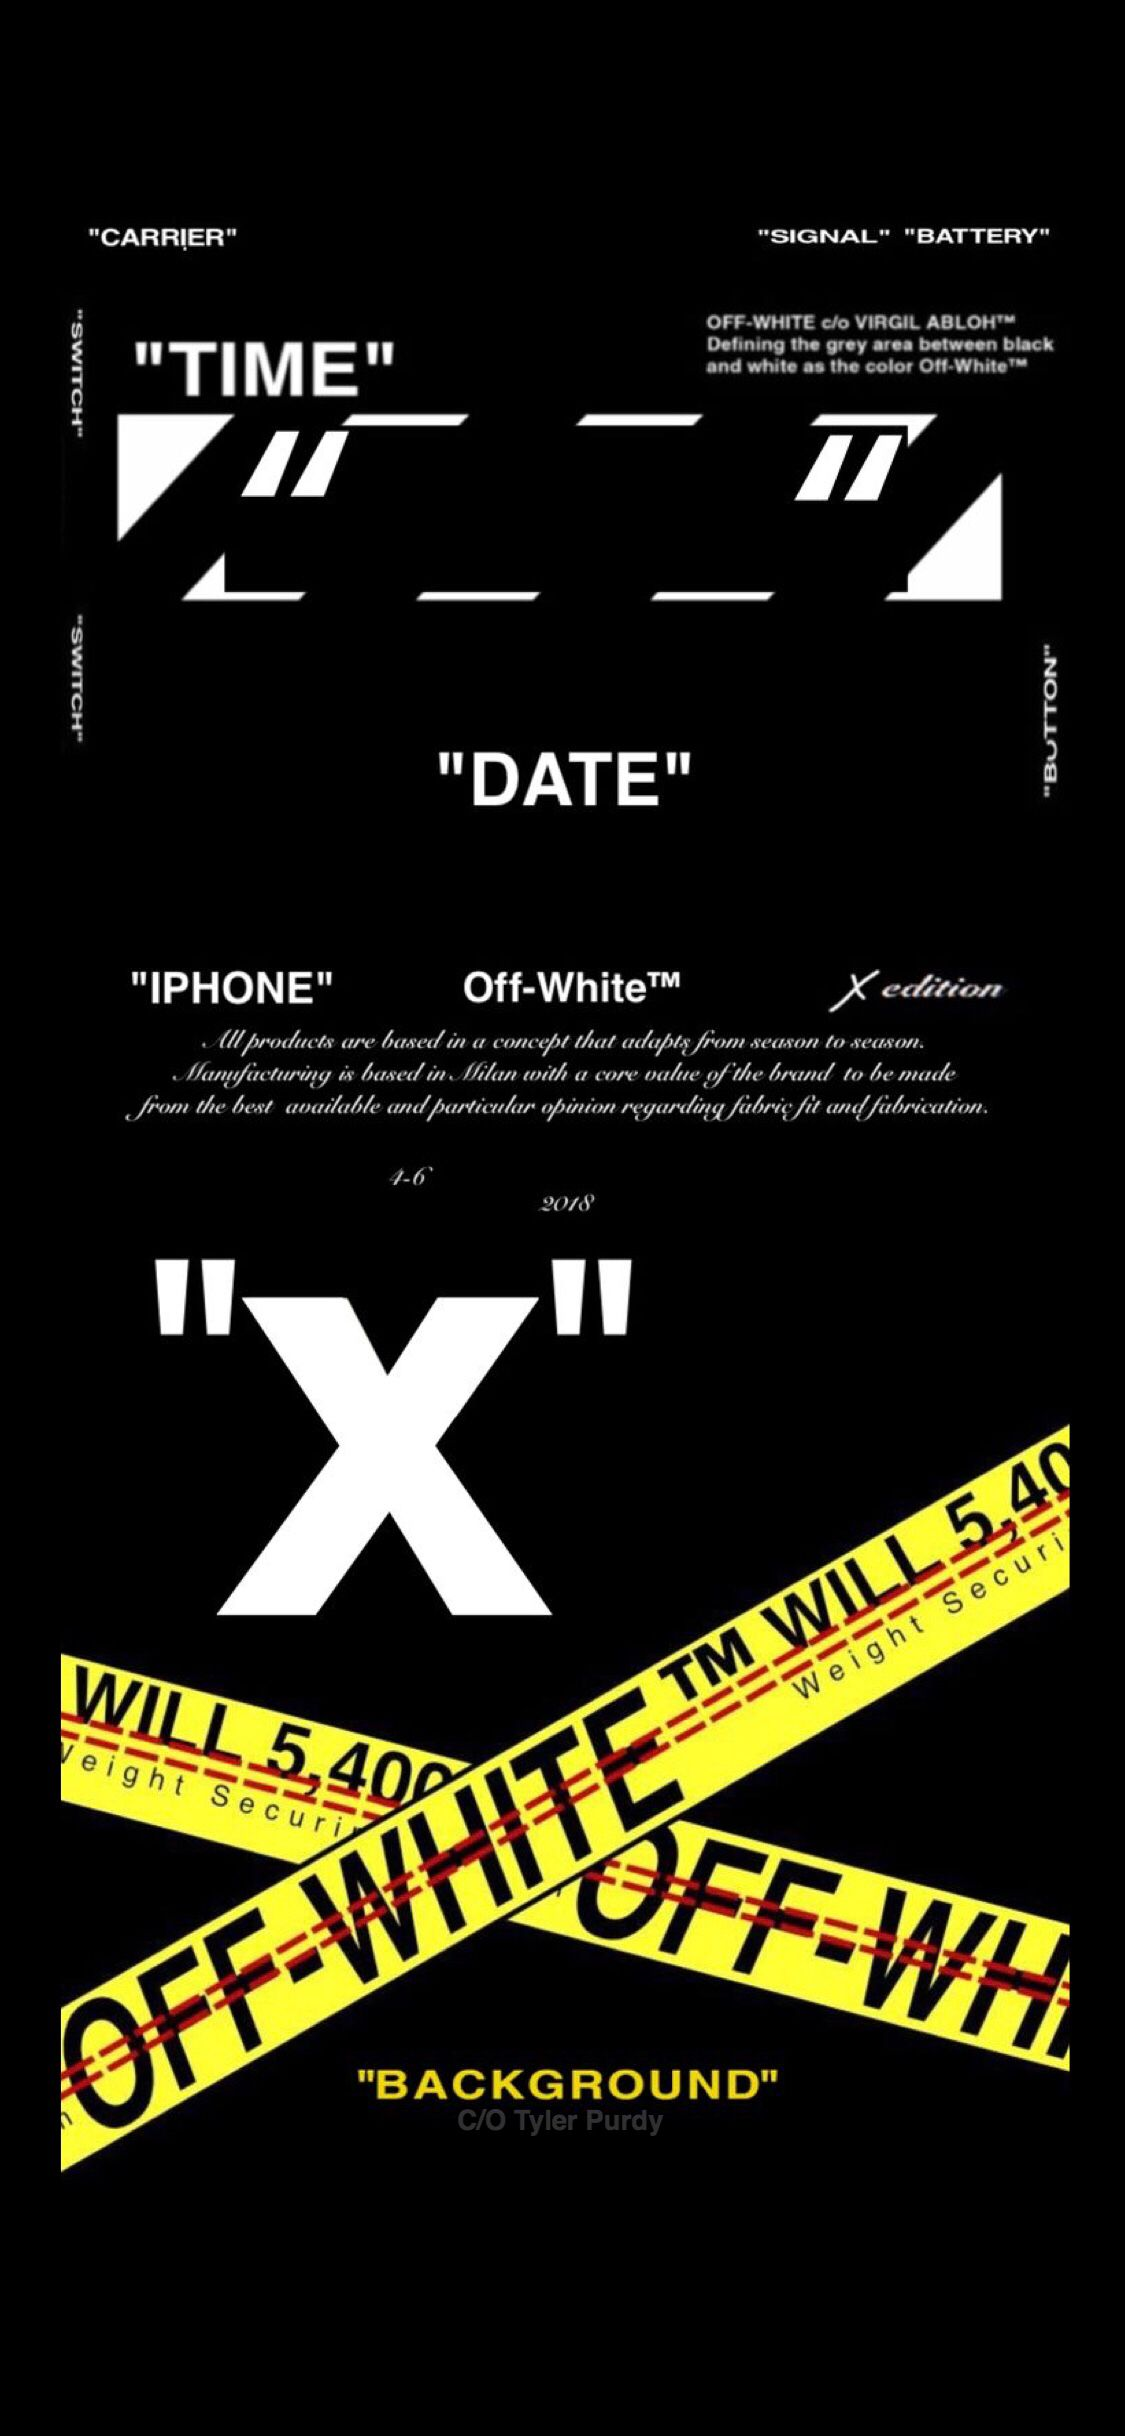 Iphone X Off White Wallpaper White Wallpaper For Iphone Wallpaper Off White Iphone Wallpaper Off White